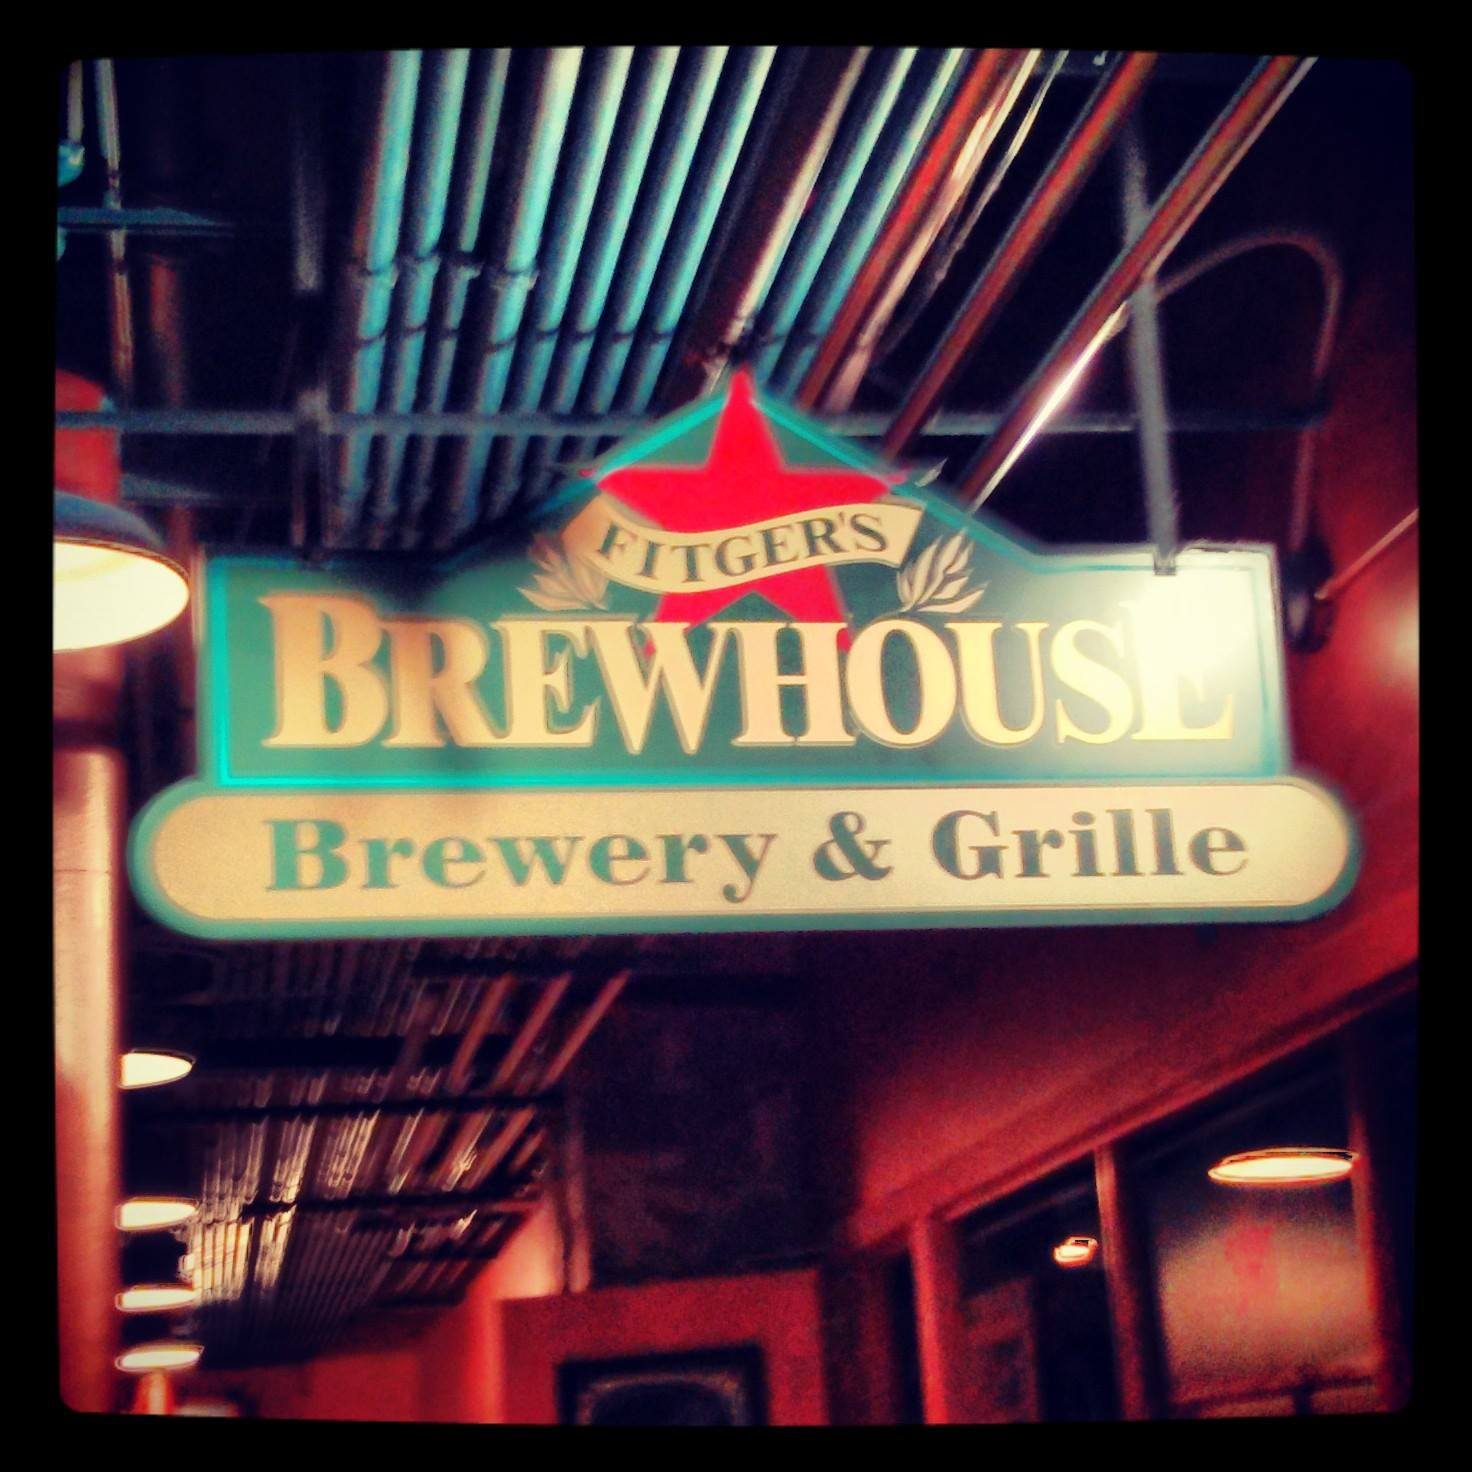 Fitger's Brewhouse Brewery & Grille